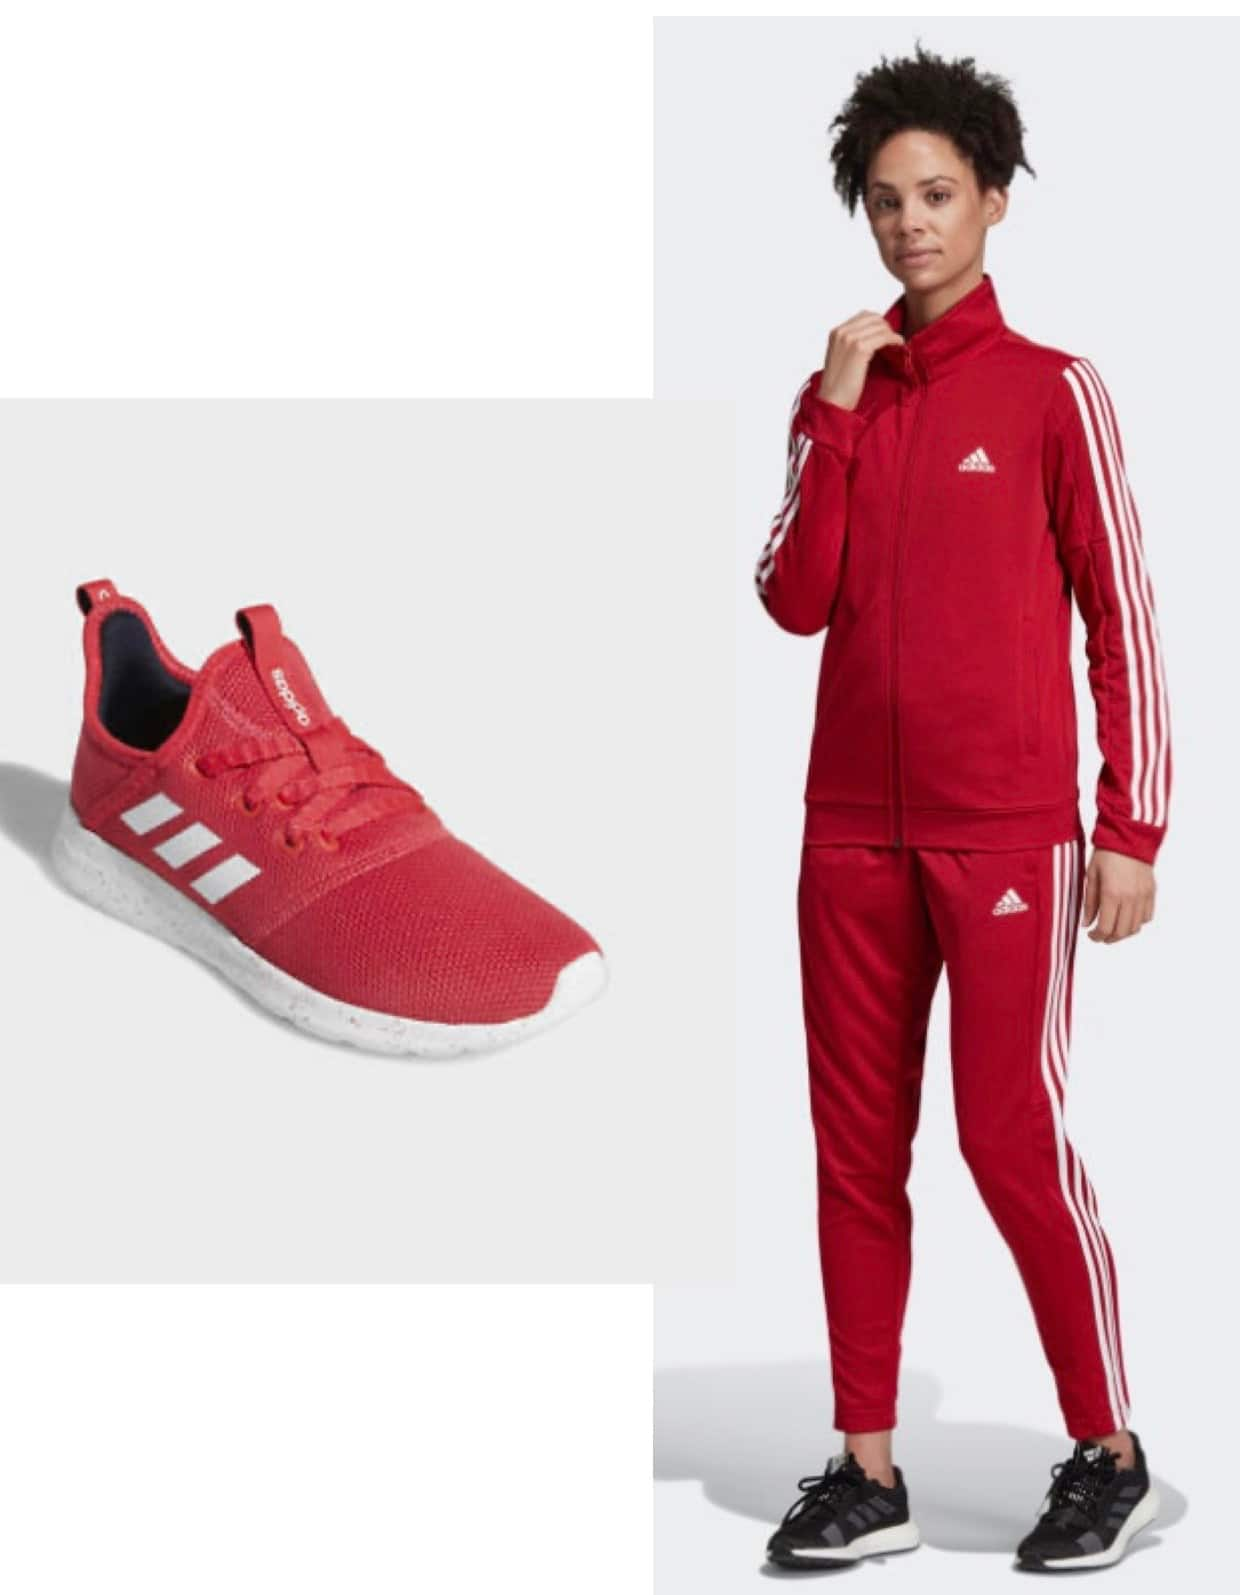 adidas Women's Team Sports Track Suit (Jacket w/ Pants) + adidas Women's Cloudform Pure Shoes $57.50 & More + free shipping